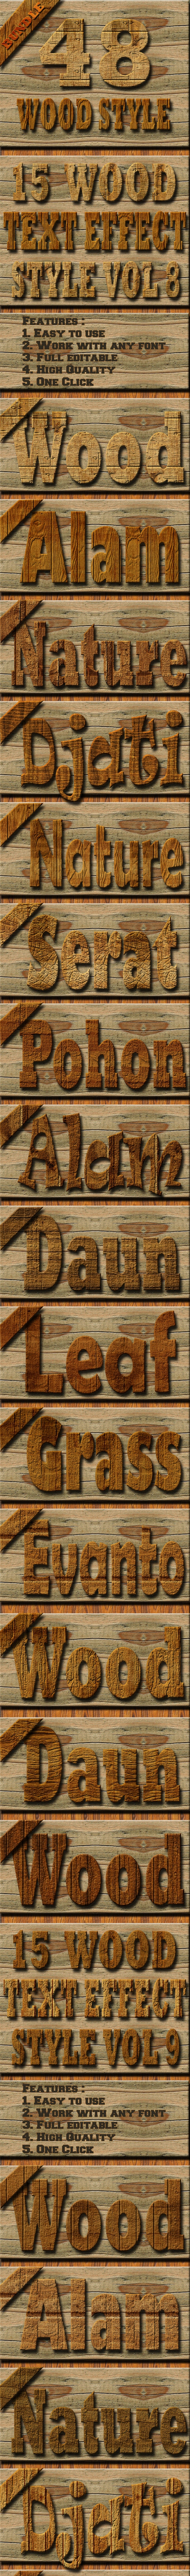 45 Wood Text Effect Style Bundle Vol 2 - Styles Photoshop